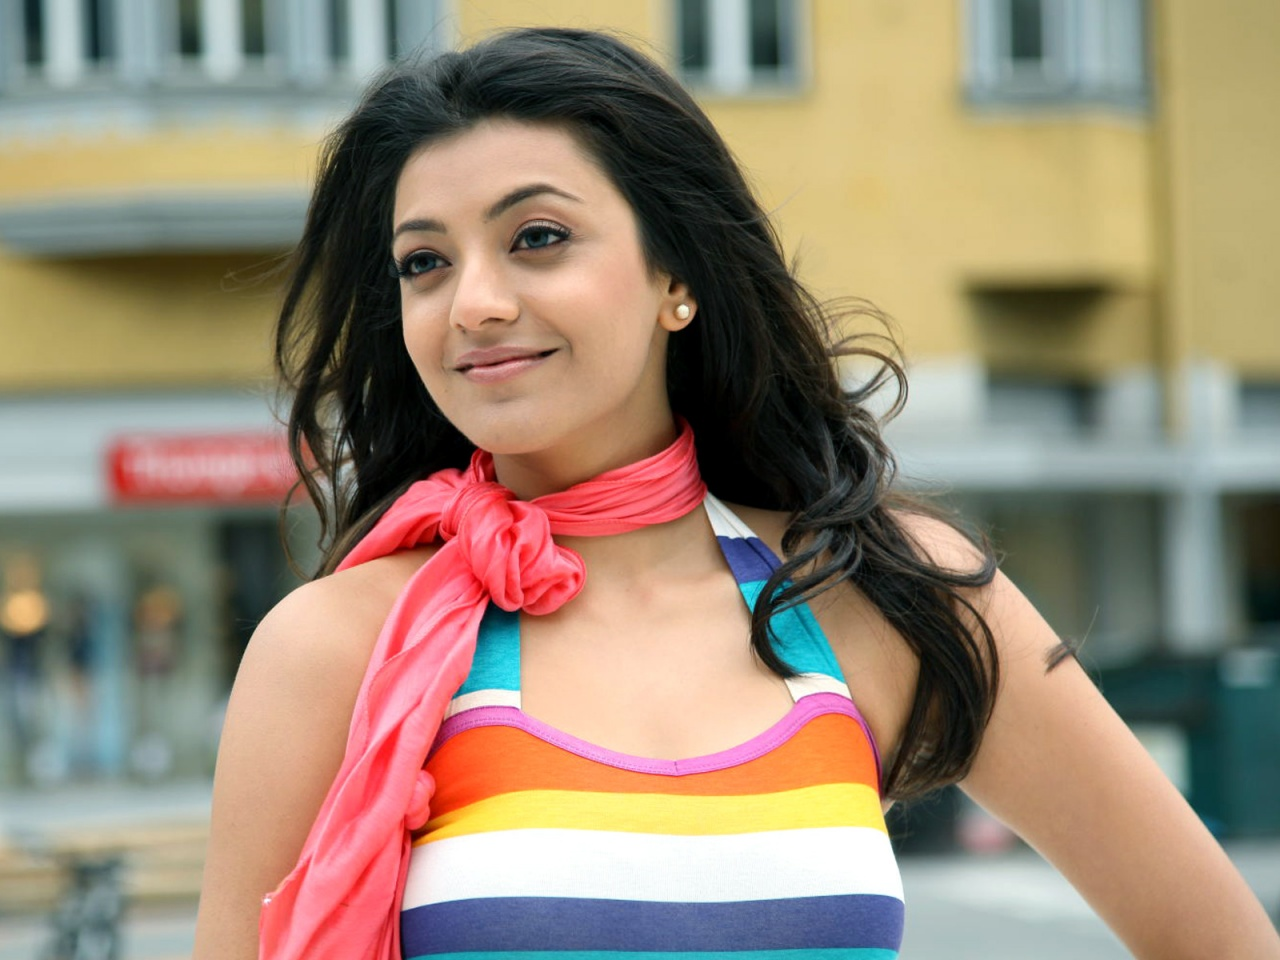 Kajal Agarwal South Actress Wallpapers In Jpg Format For Free Download